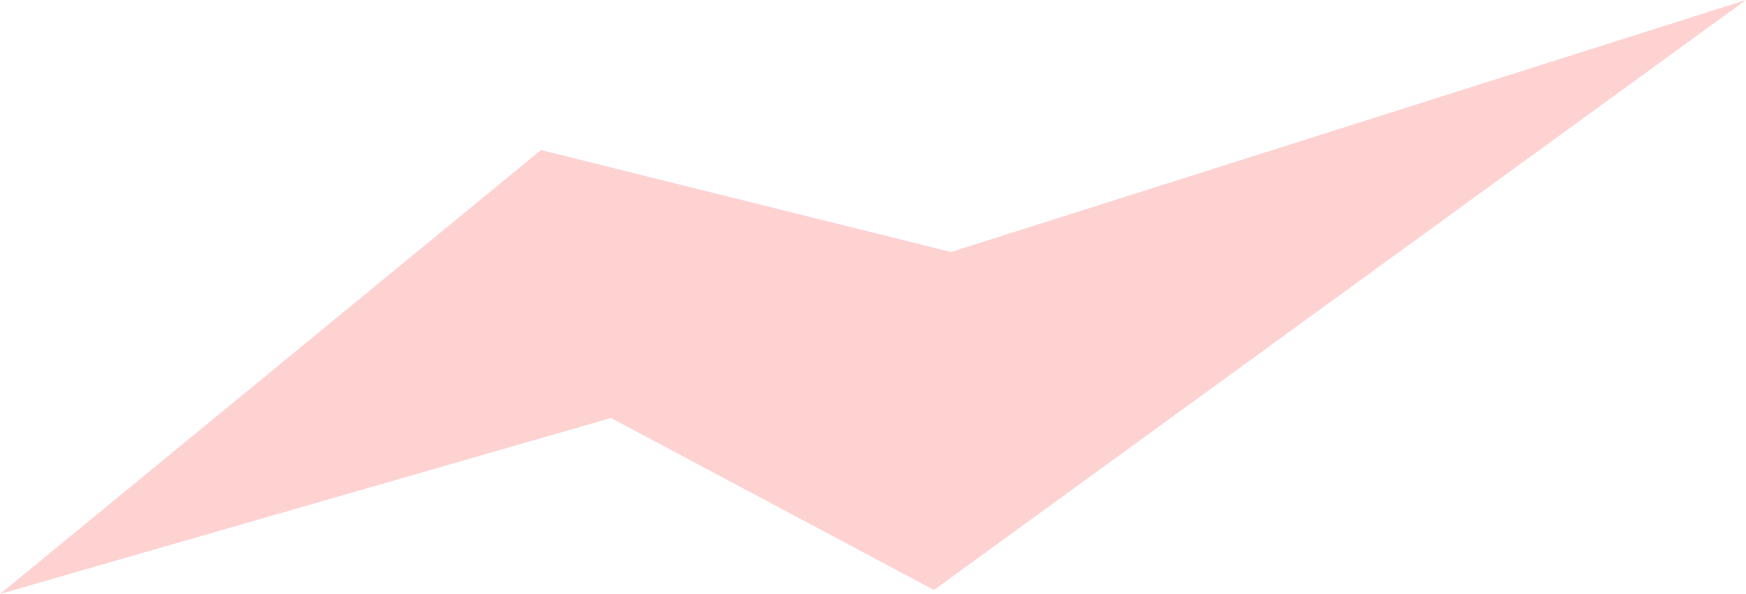 Red Shape